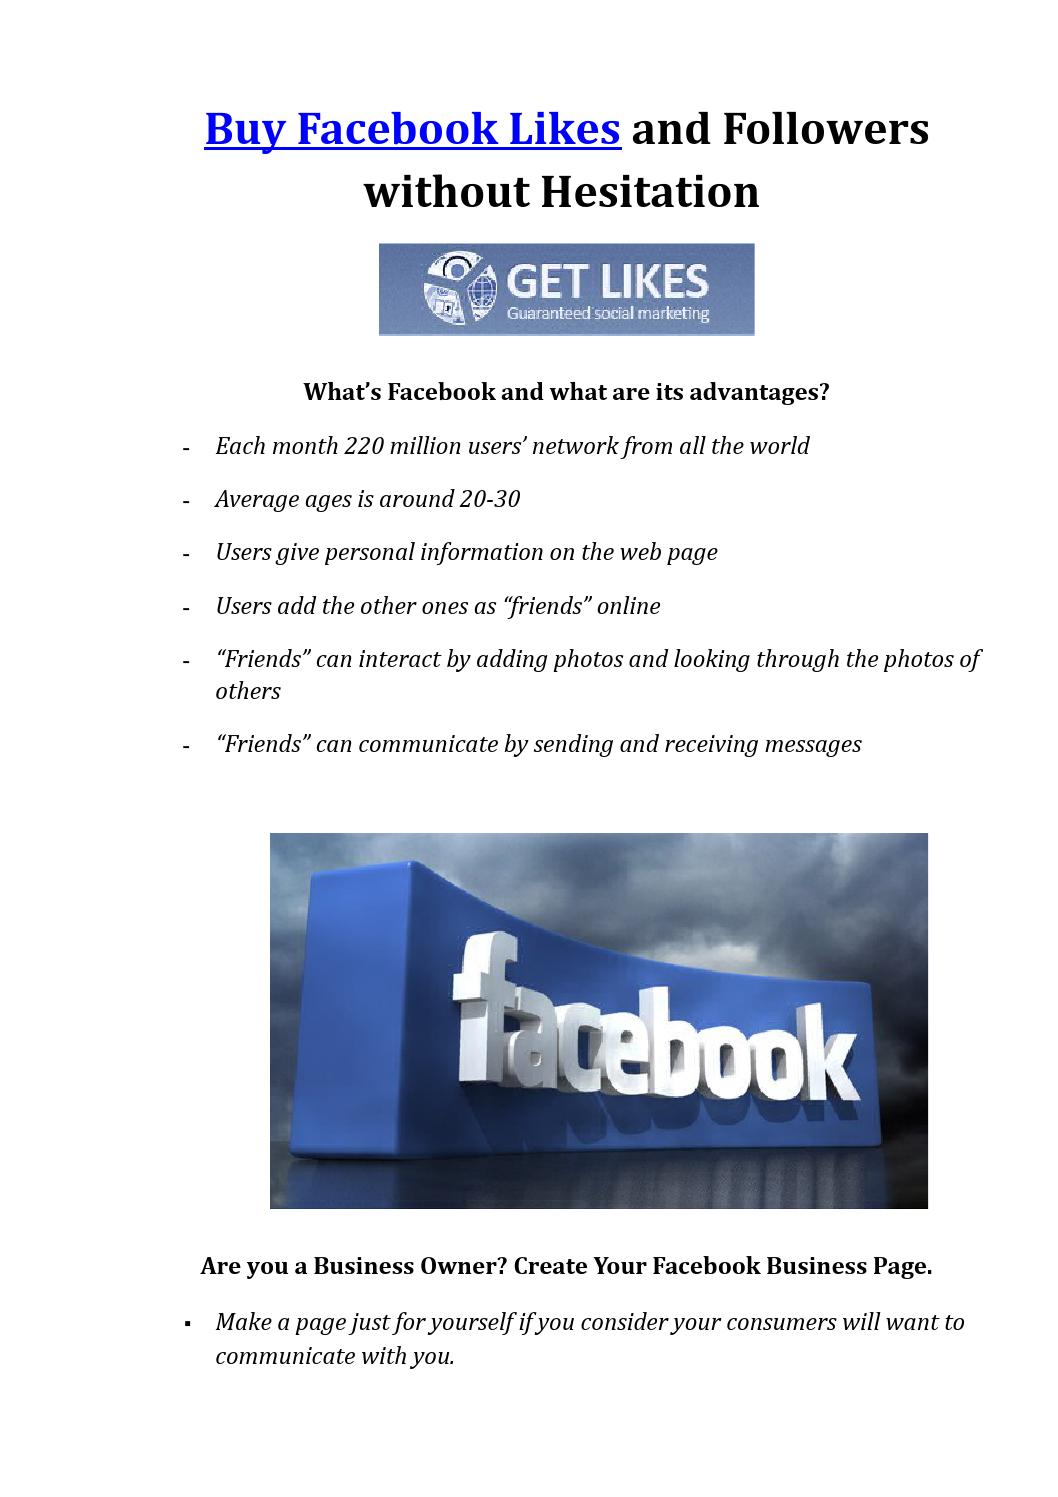 Buy facebook likes and followers without hesitation by buy_facebook_likes - Issuu